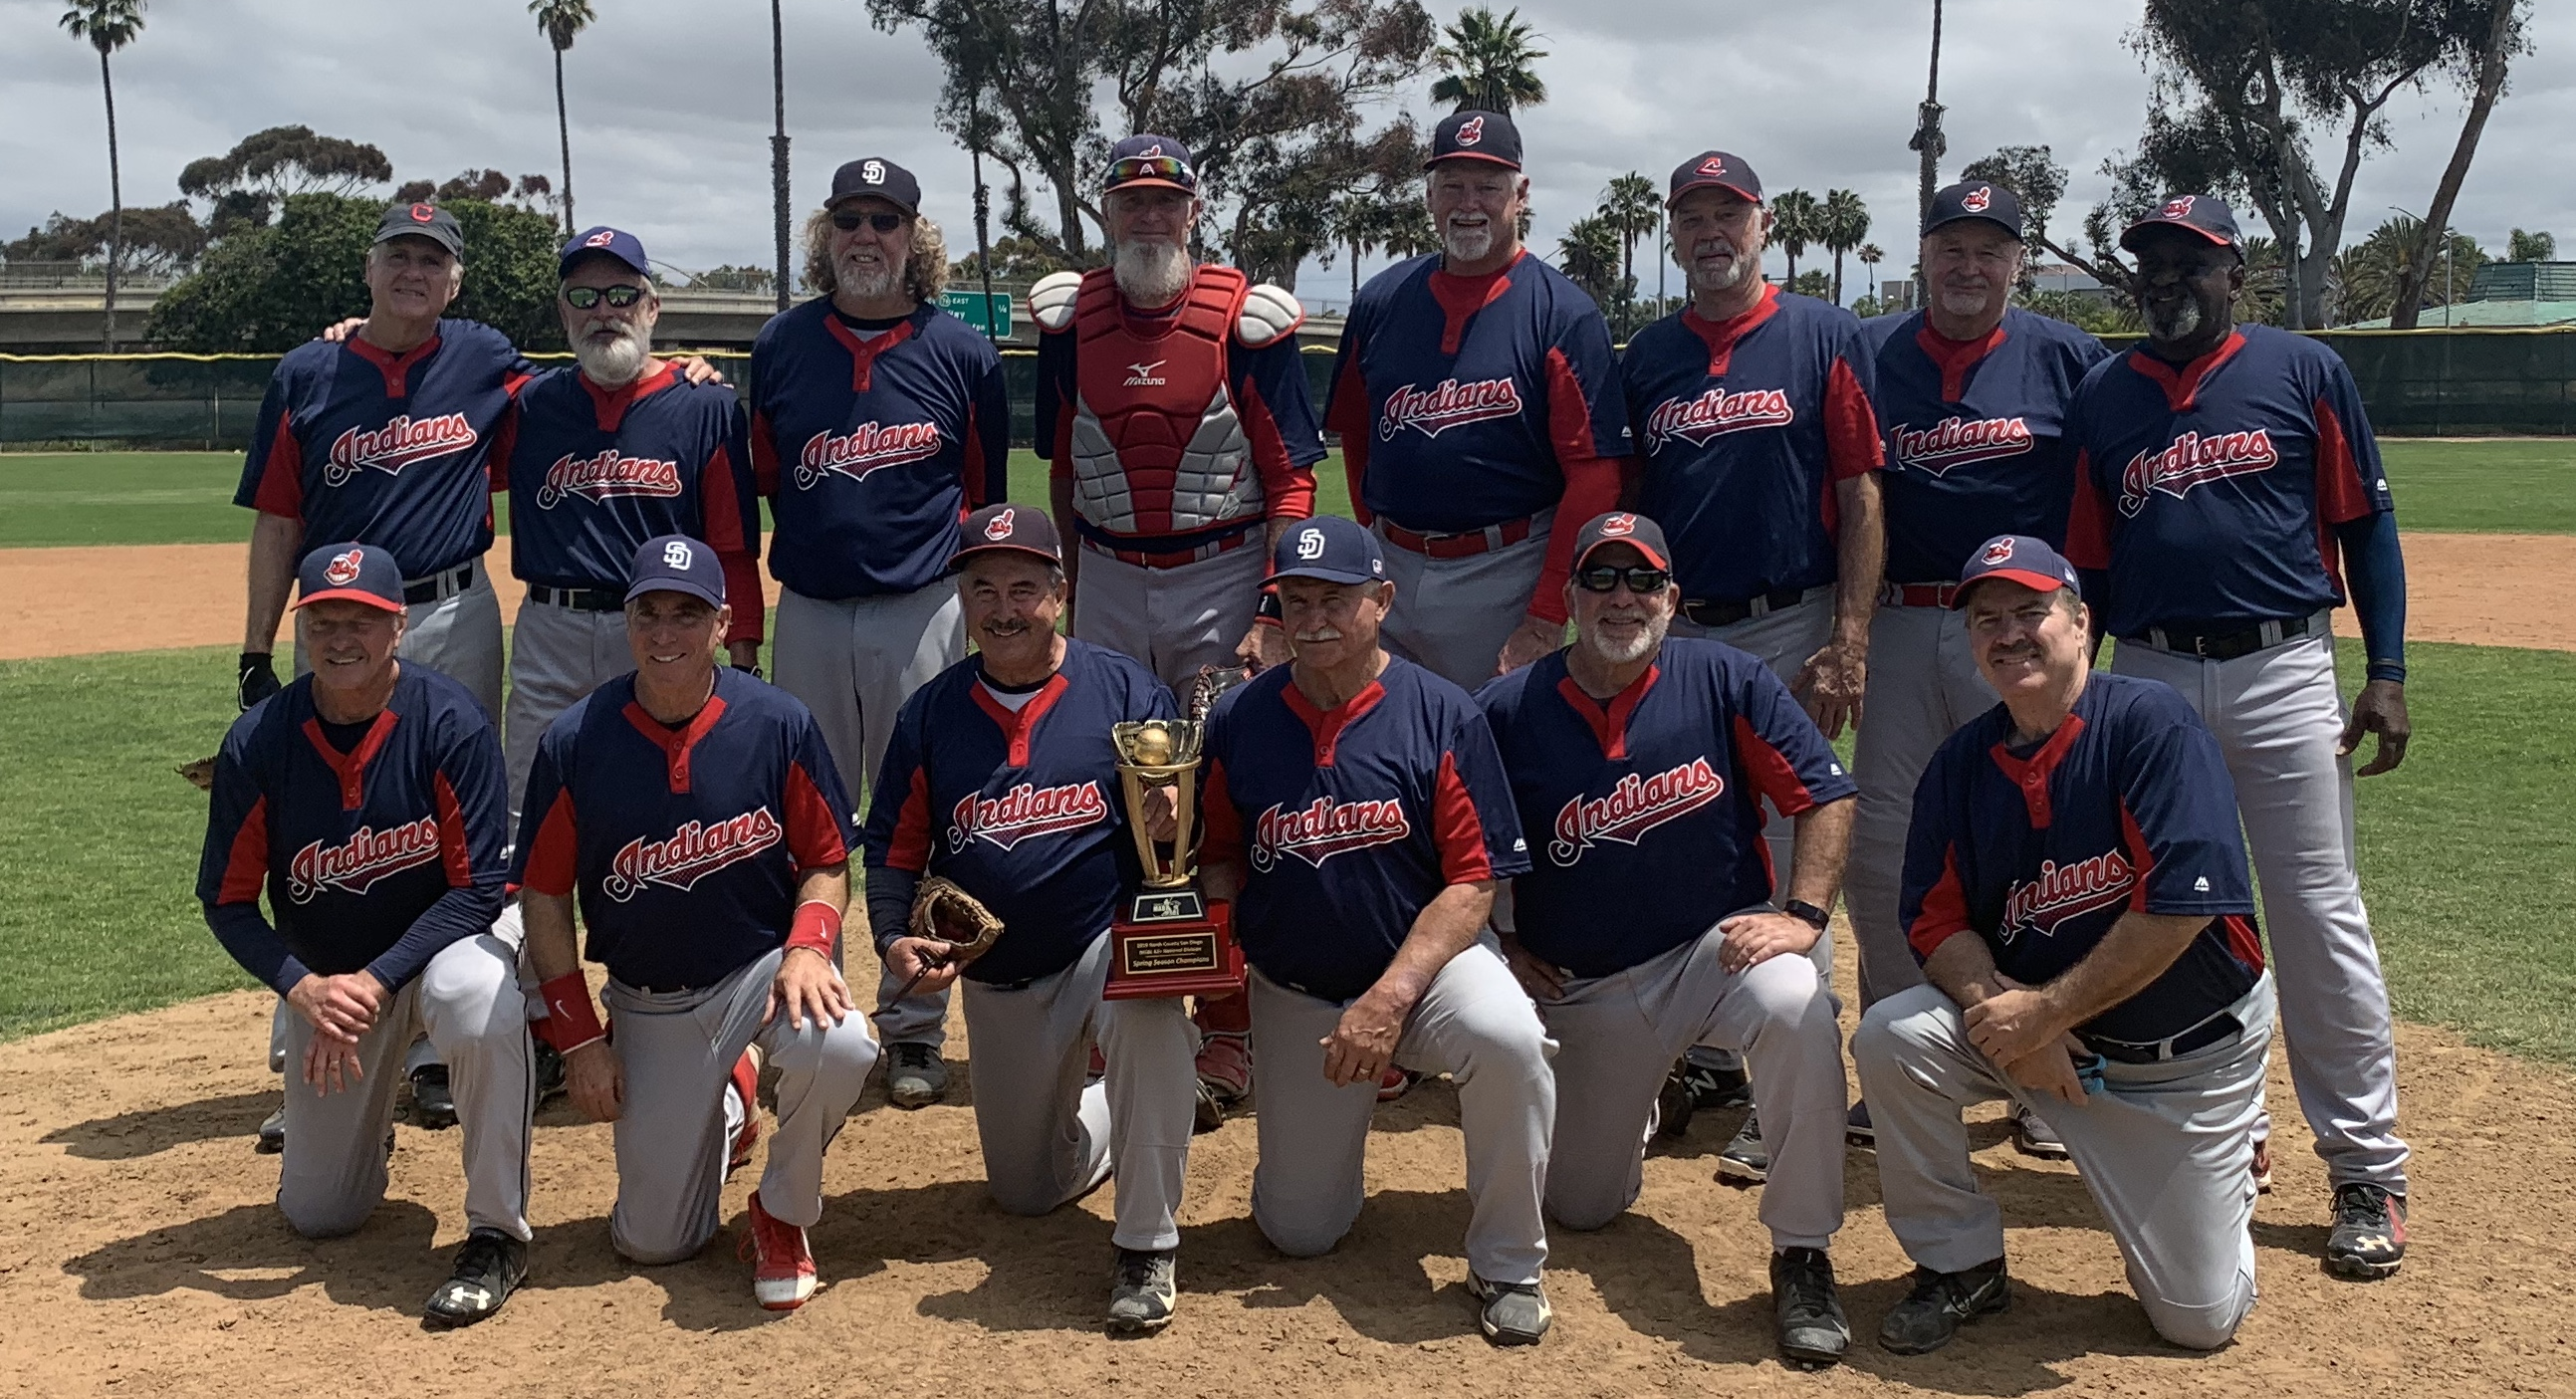 Congratulations to the  North County Indians, The 2019 MSBL 62+ Division  Spring Champions